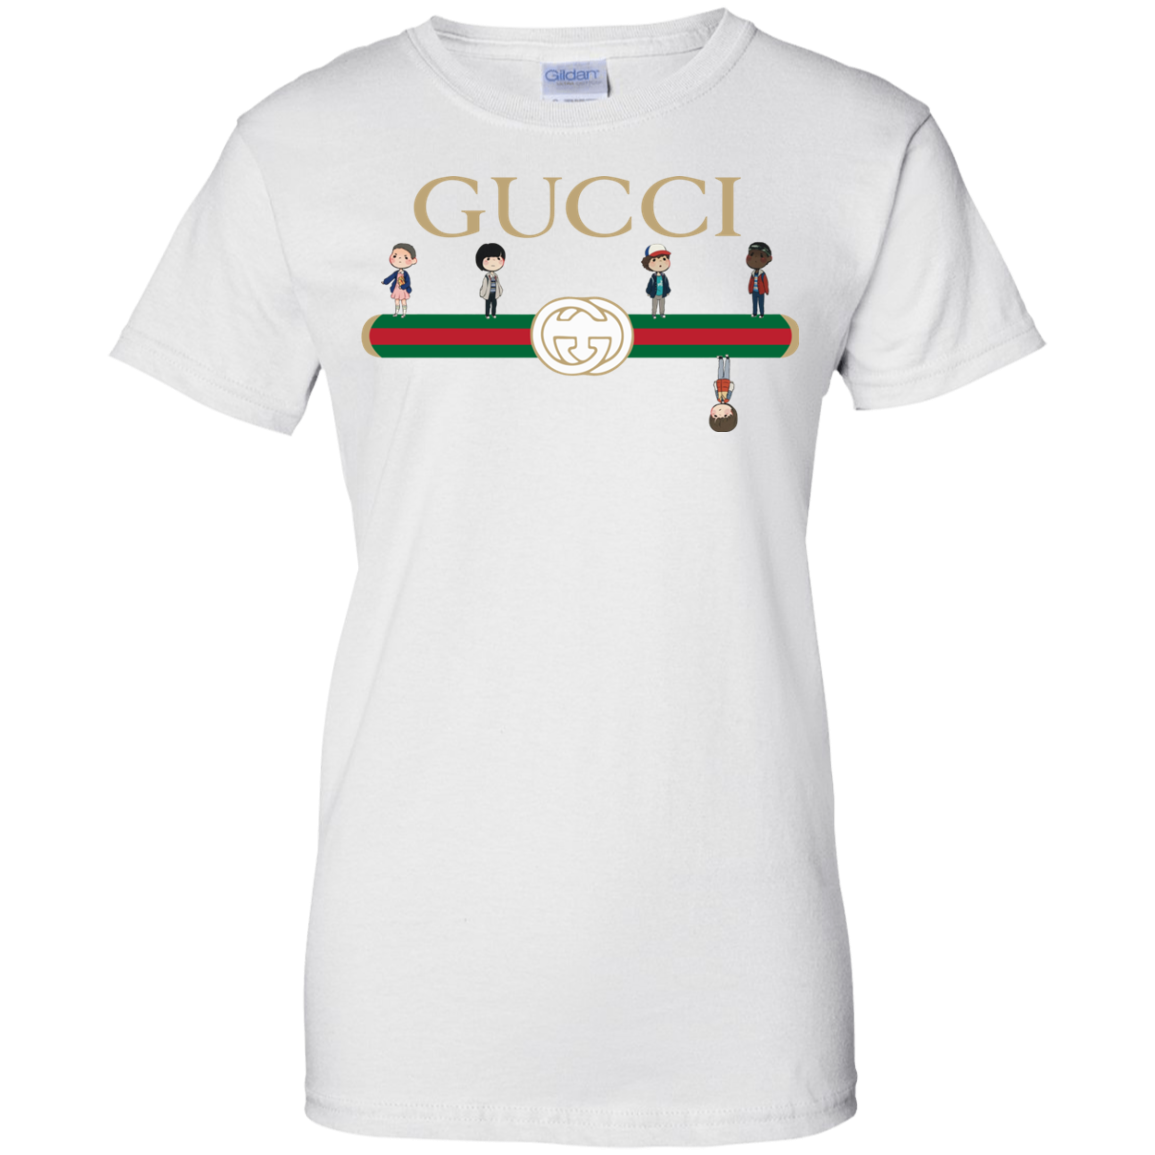 stranger things upside down gucci shirt sweatshirt. Black Bedroom Furniture Sets. Home Design Ideas